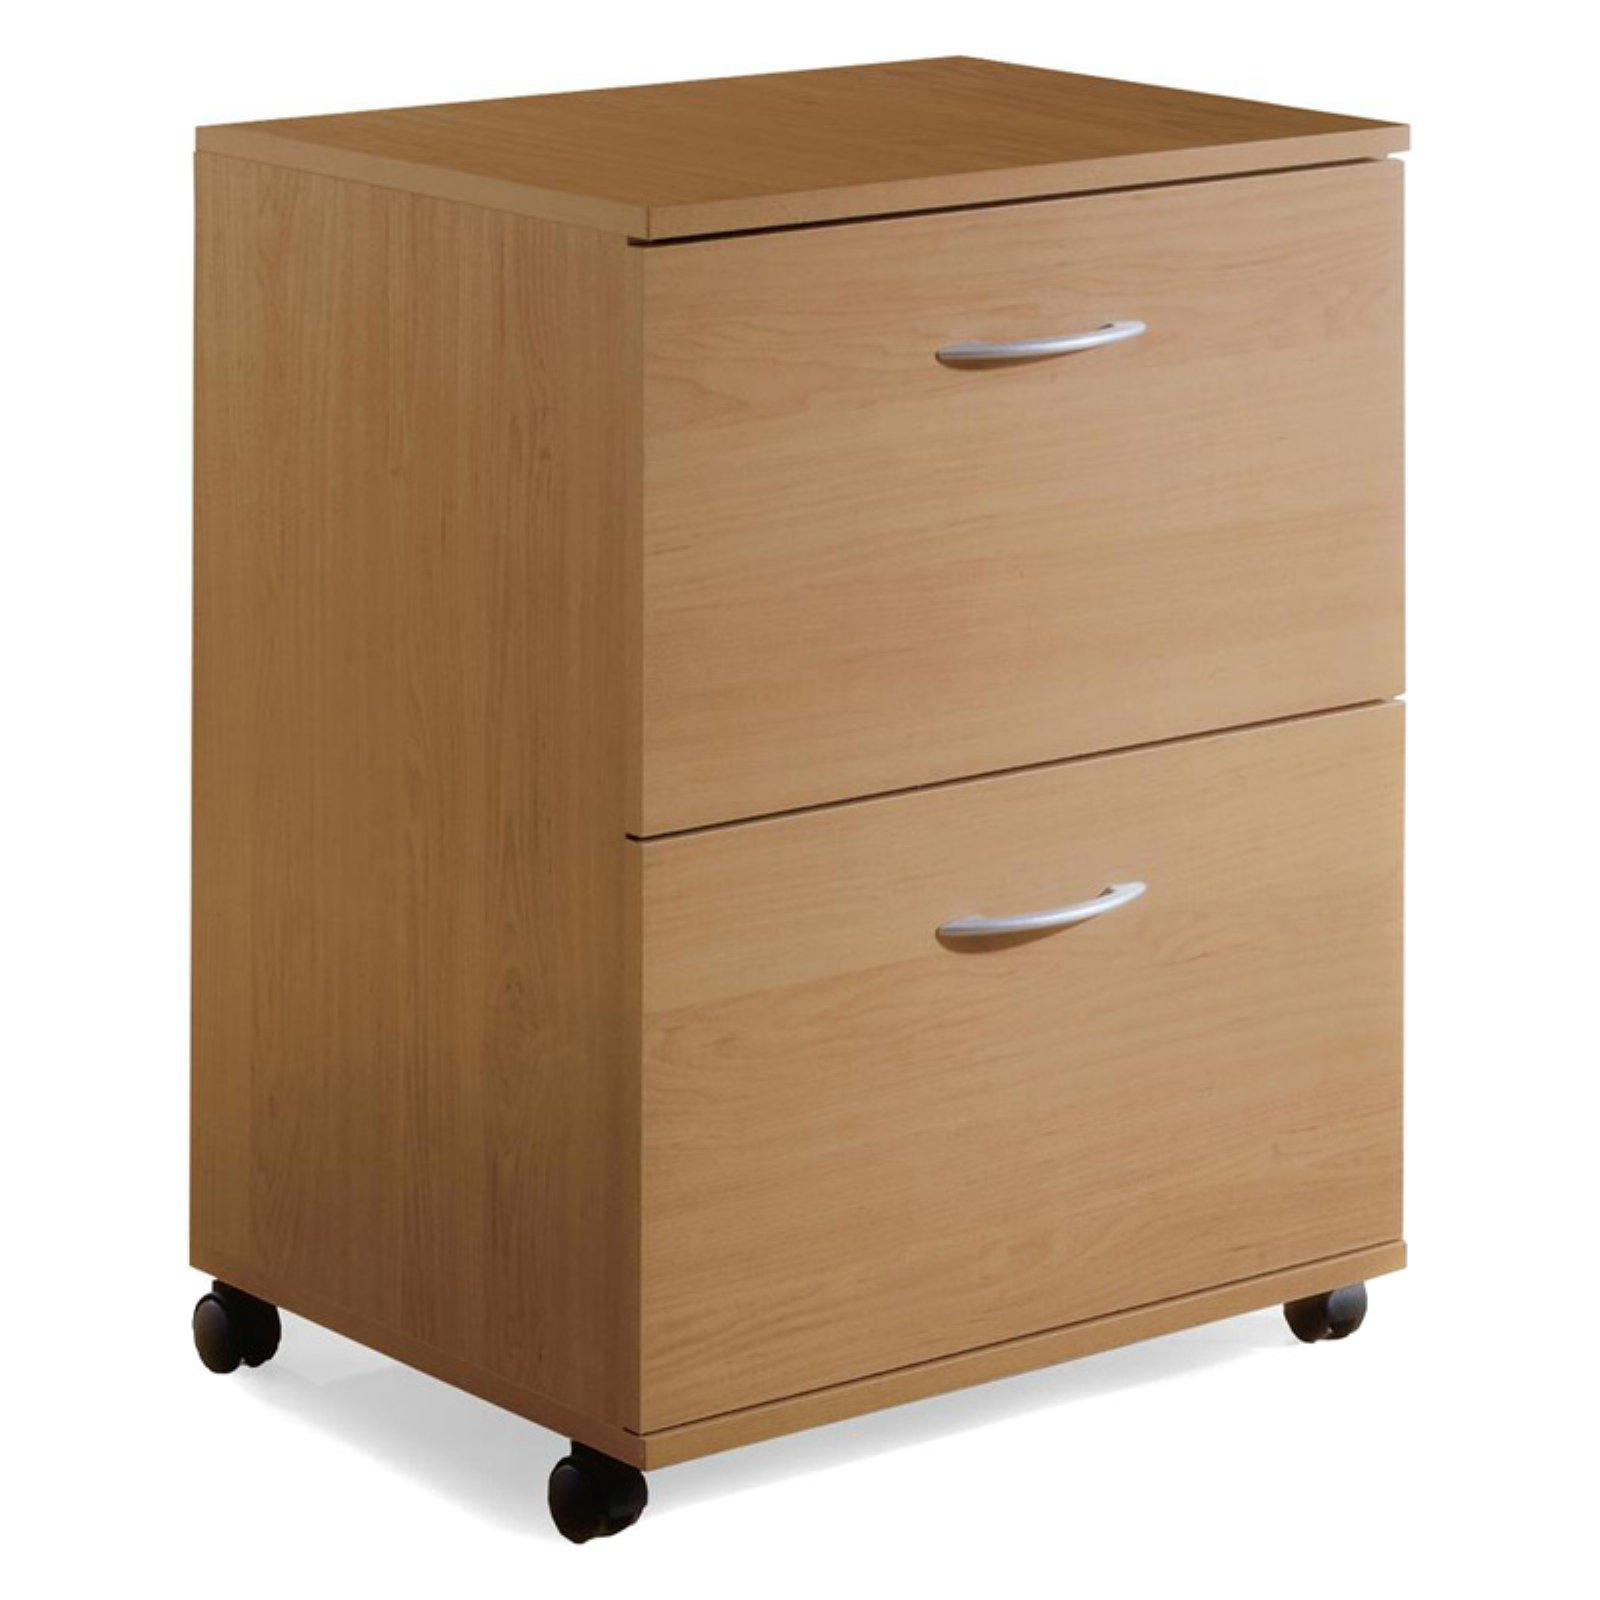 2 Drawers Vertical Wood Composite Filing Cabinet